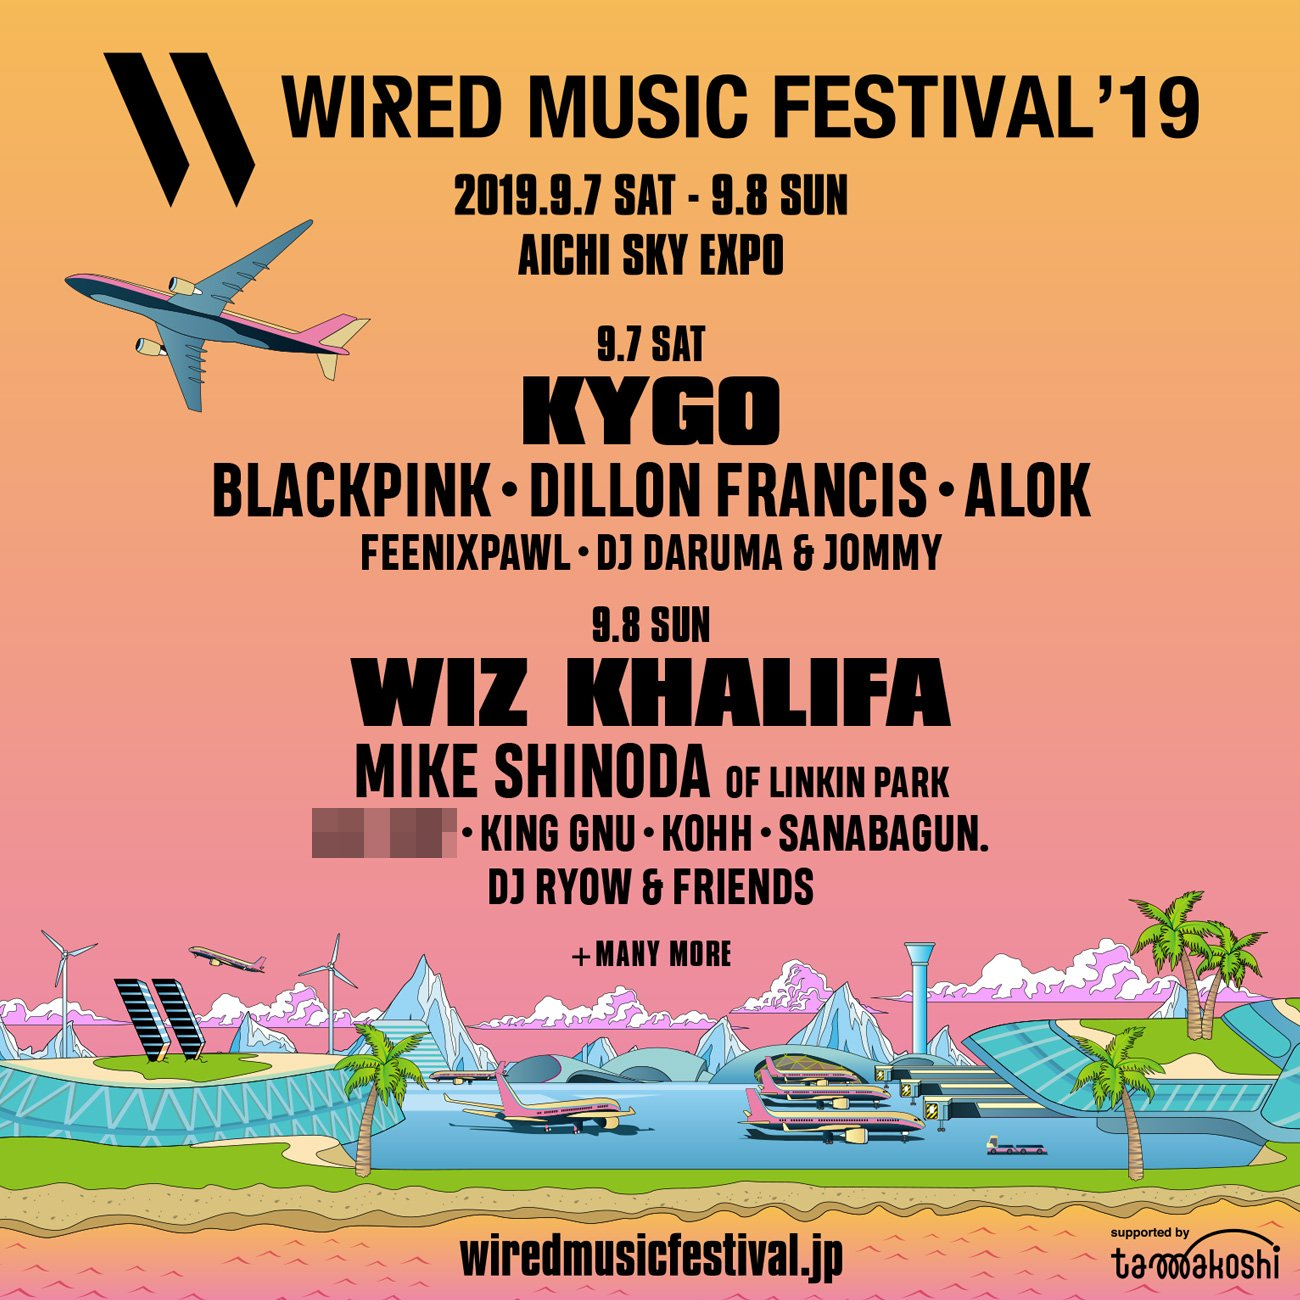 #BLACKPINK To Attend WIRED MUSIC FESTIVAL In Japan